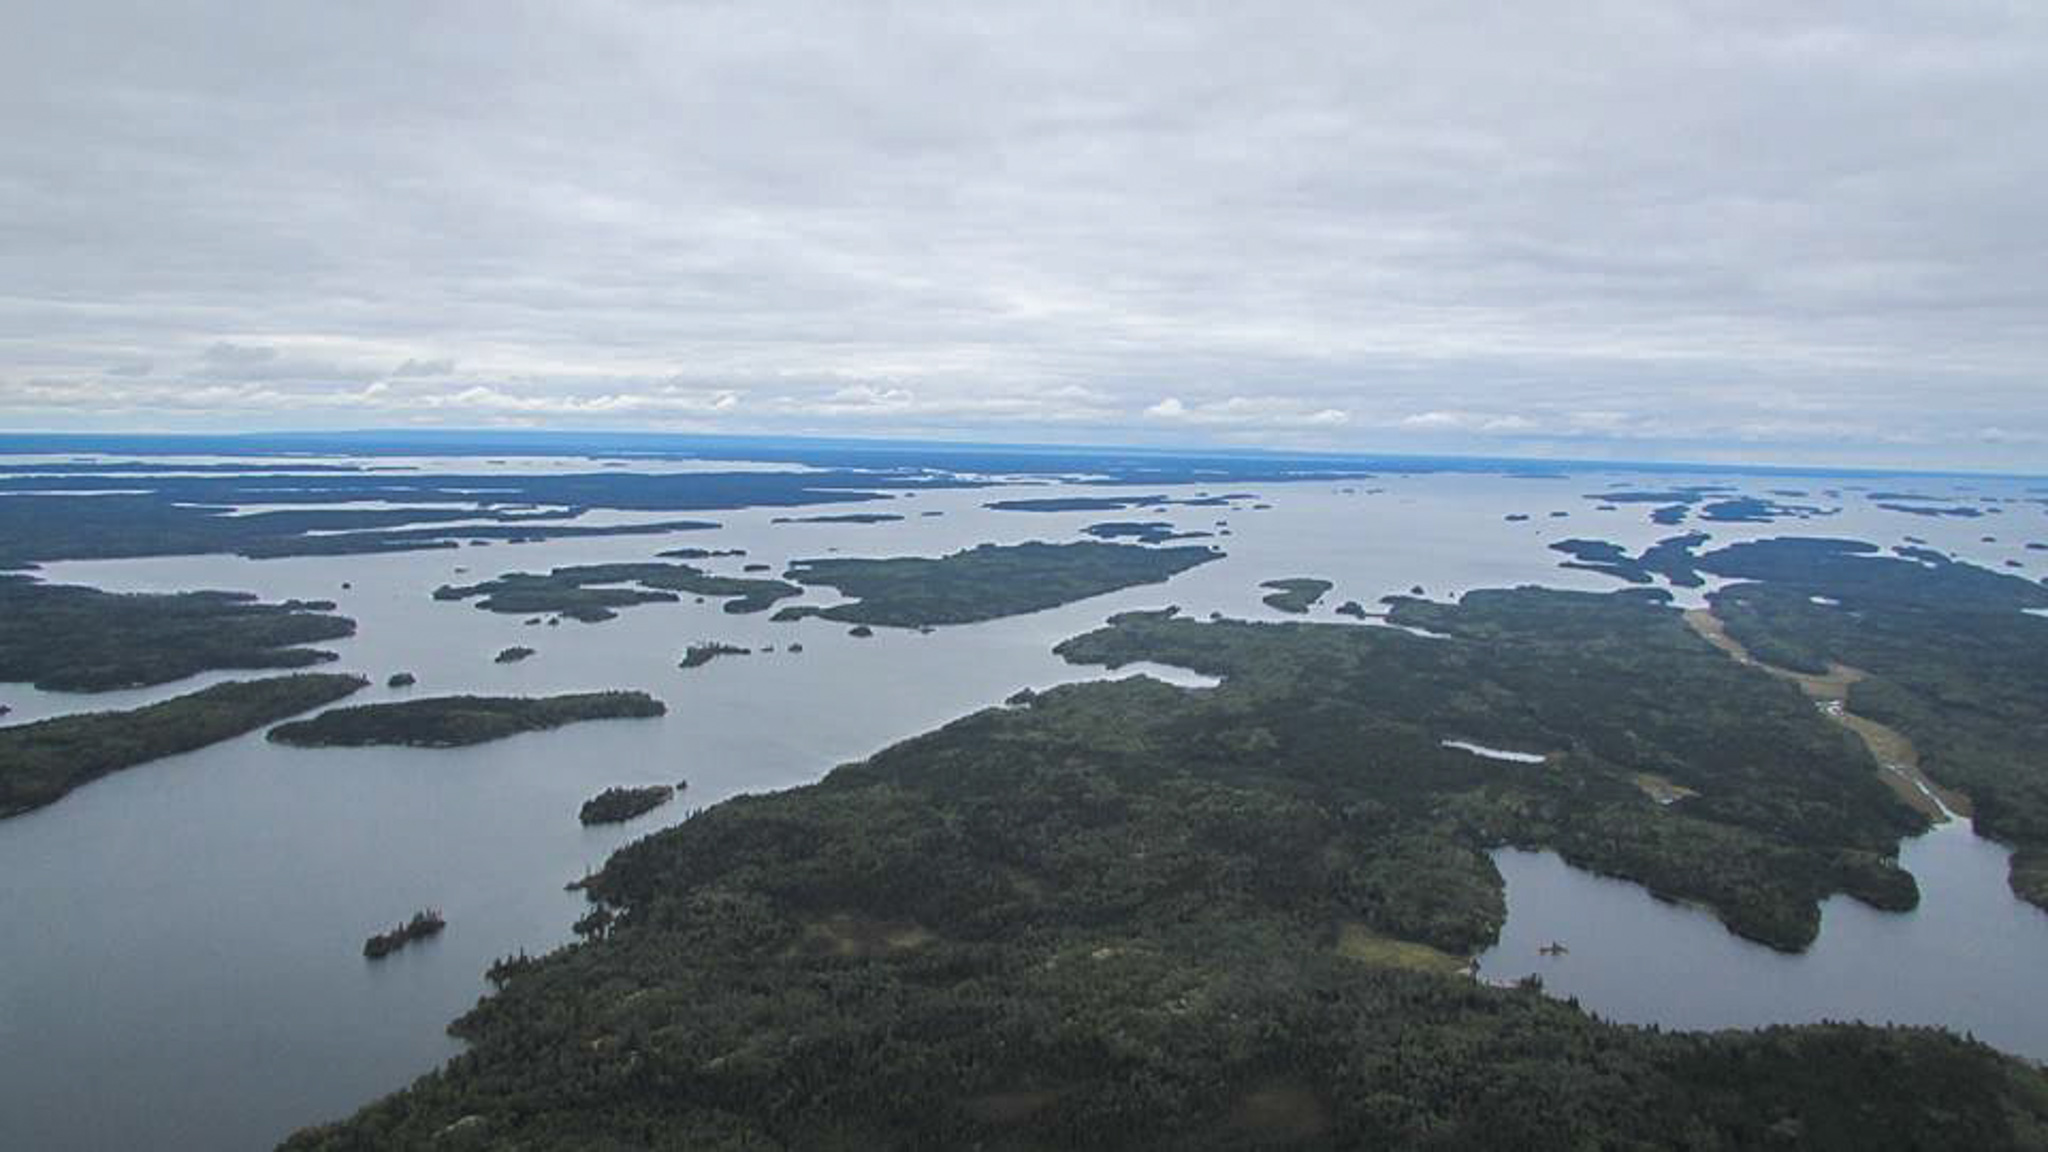 Island Biogeography on Lac la Ronge